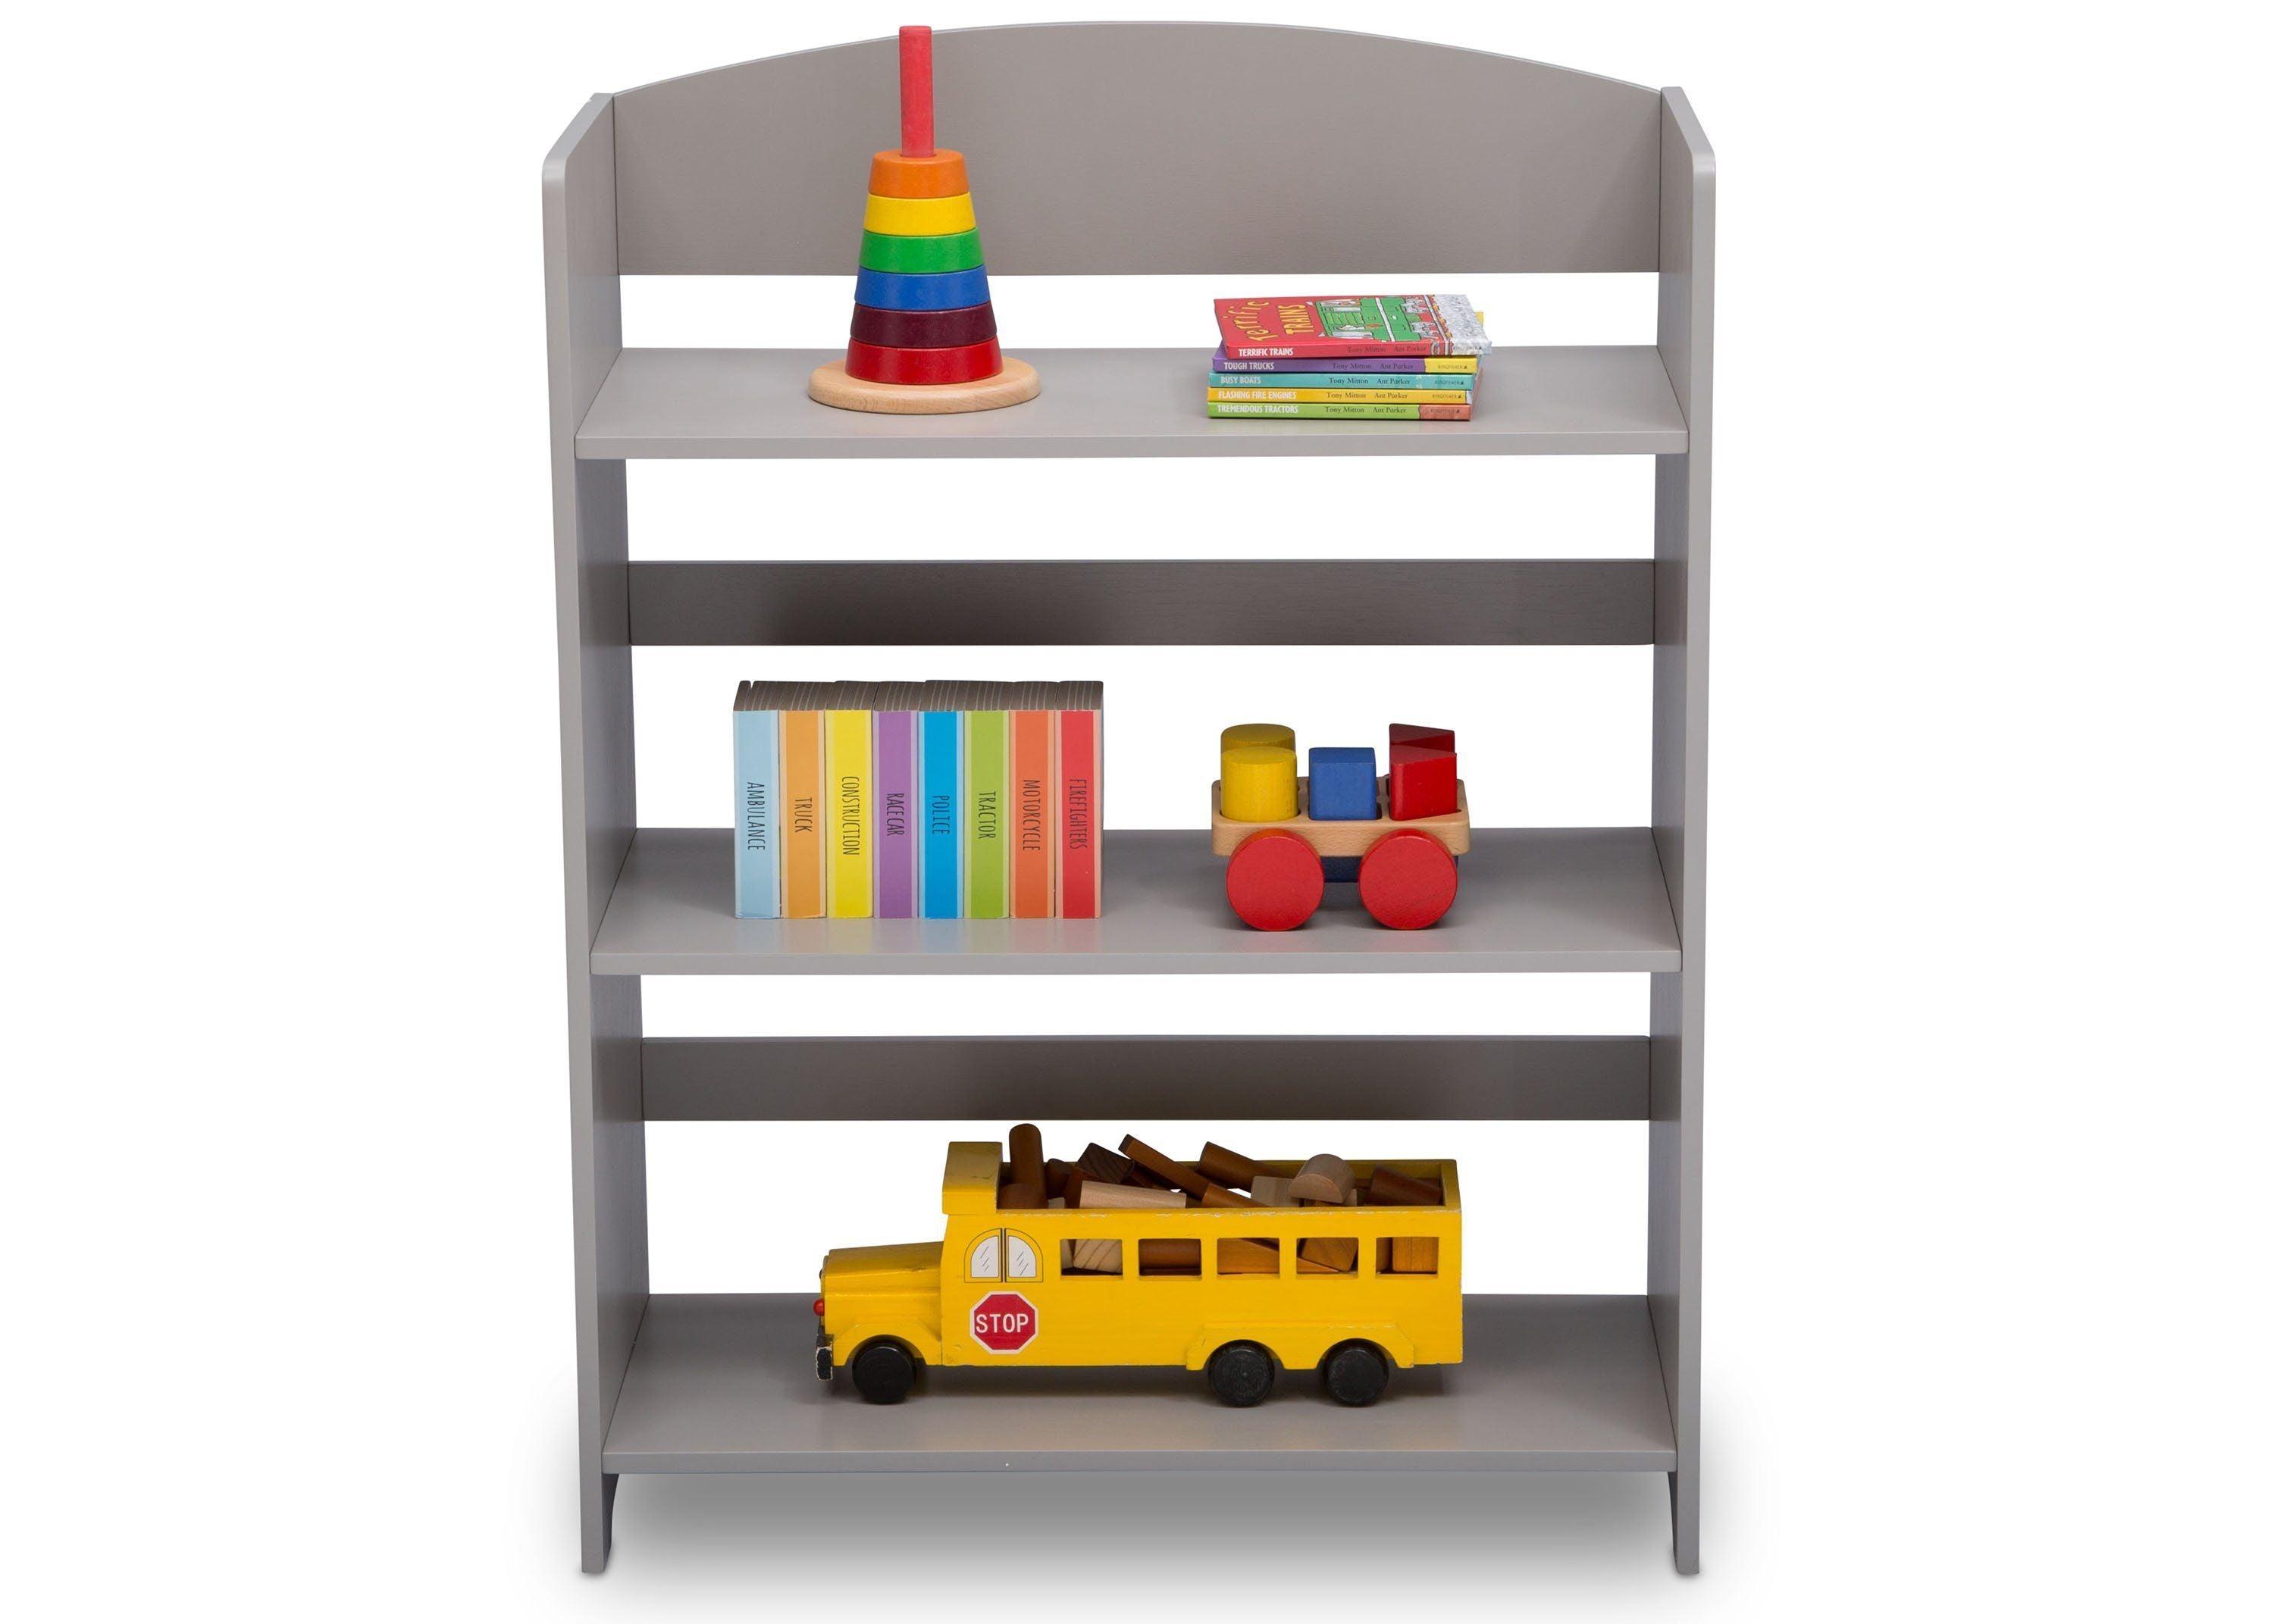 bookcases children furniture sling shopify copy bookshelf storage kids products shelf display bookcase white cover